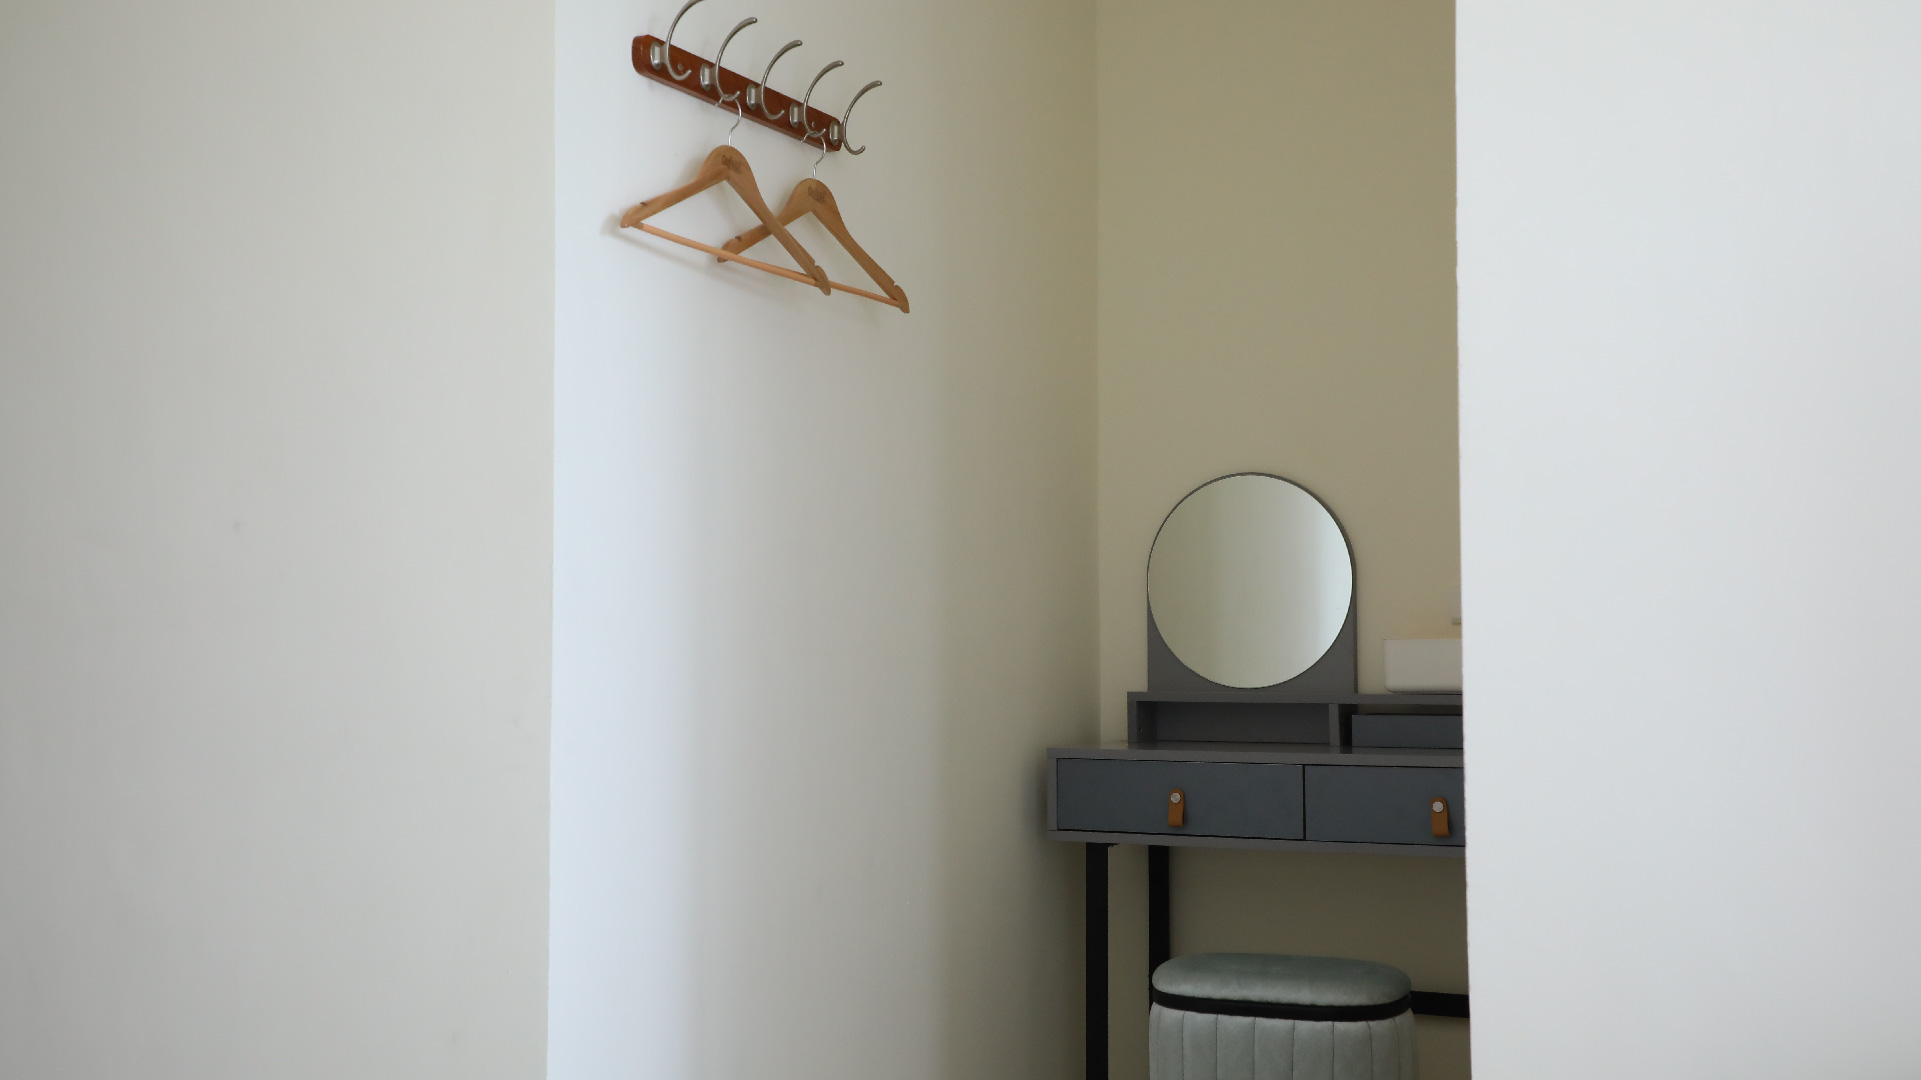 Rooms-68_102-2